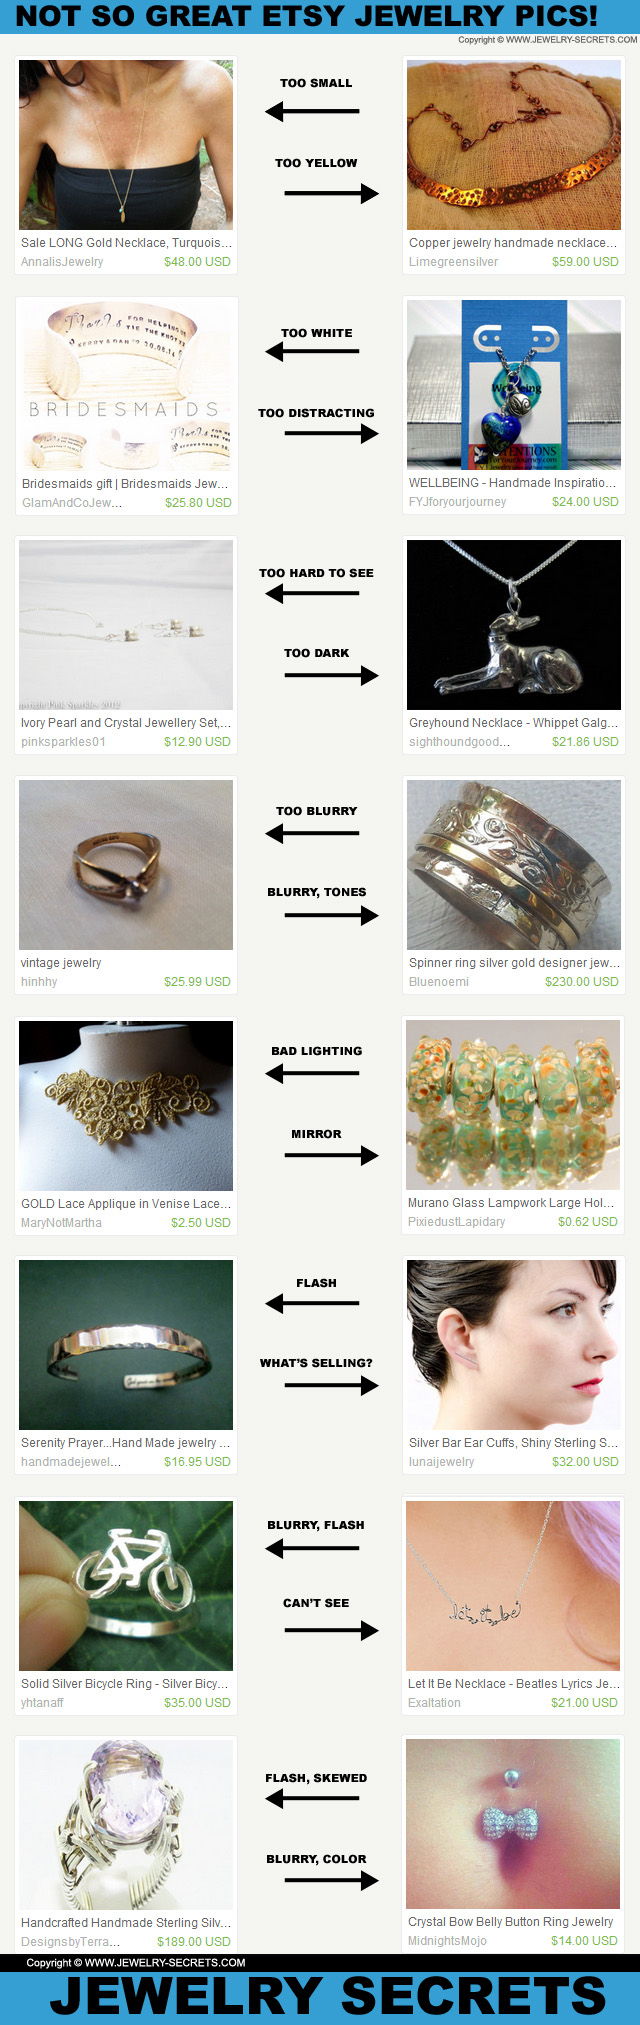 Bad Jewelry Photography On Etsy